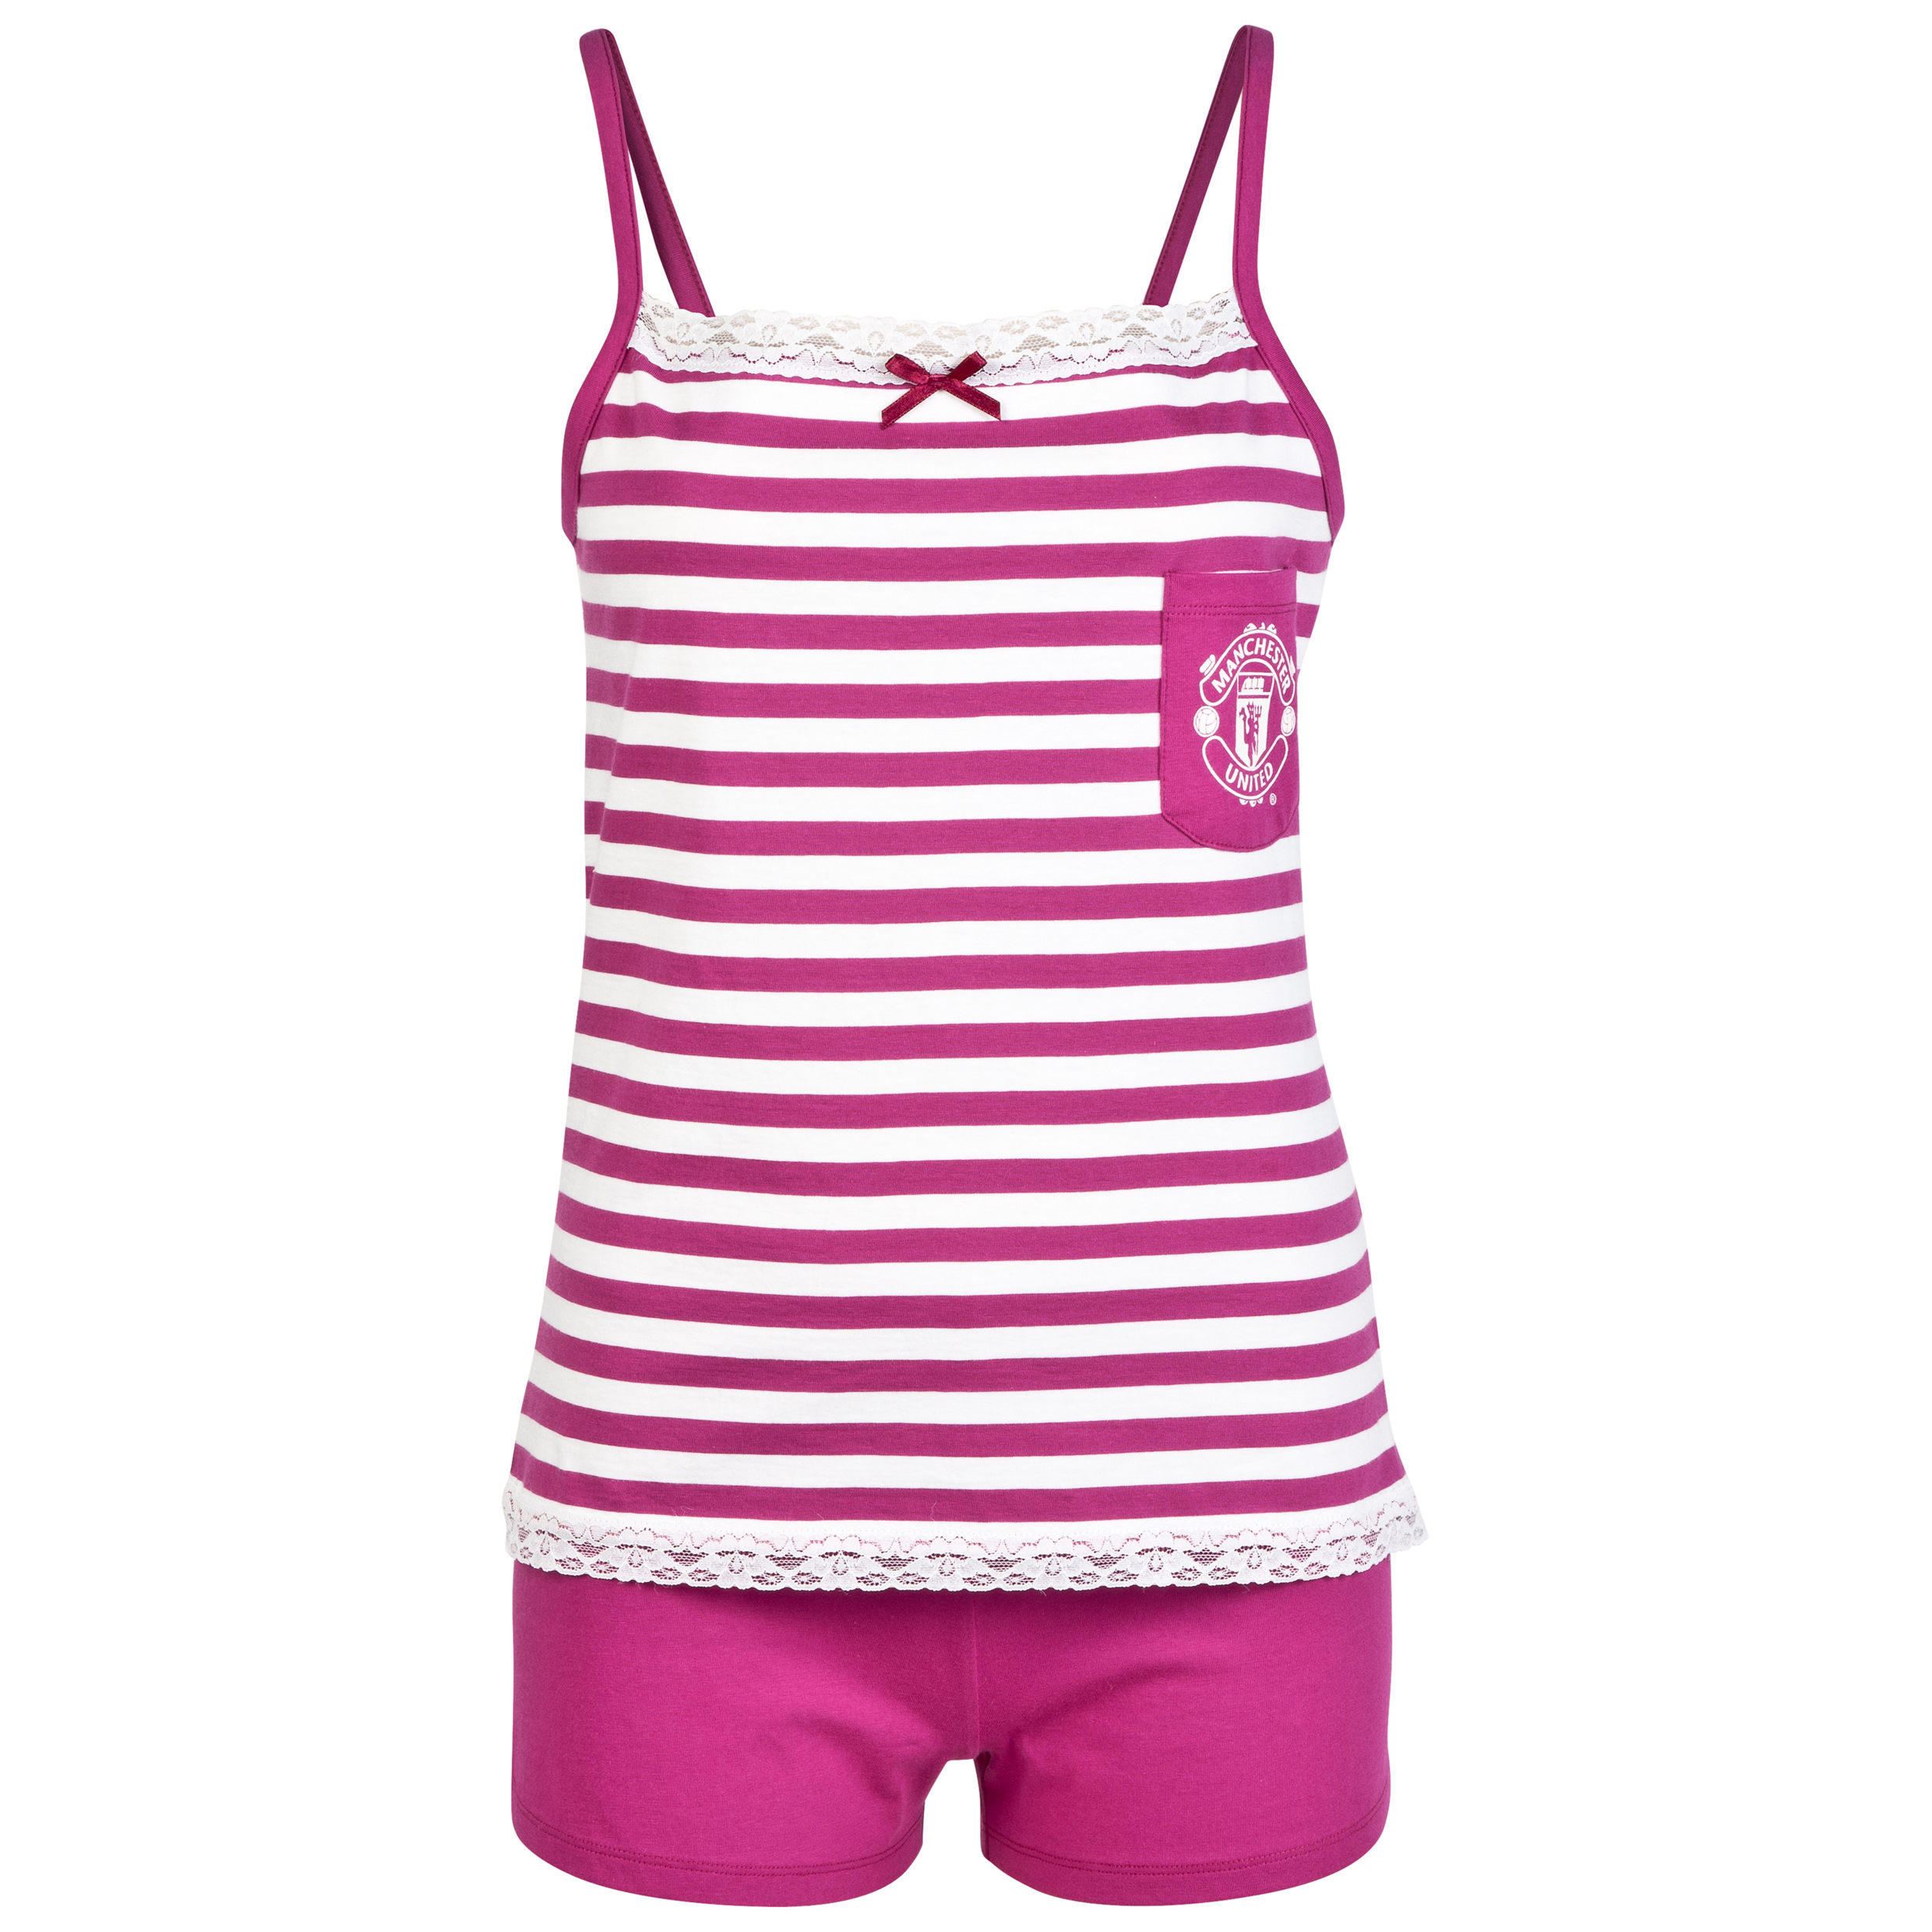 Manchester United Striped Shortie Pyjamas - Womens